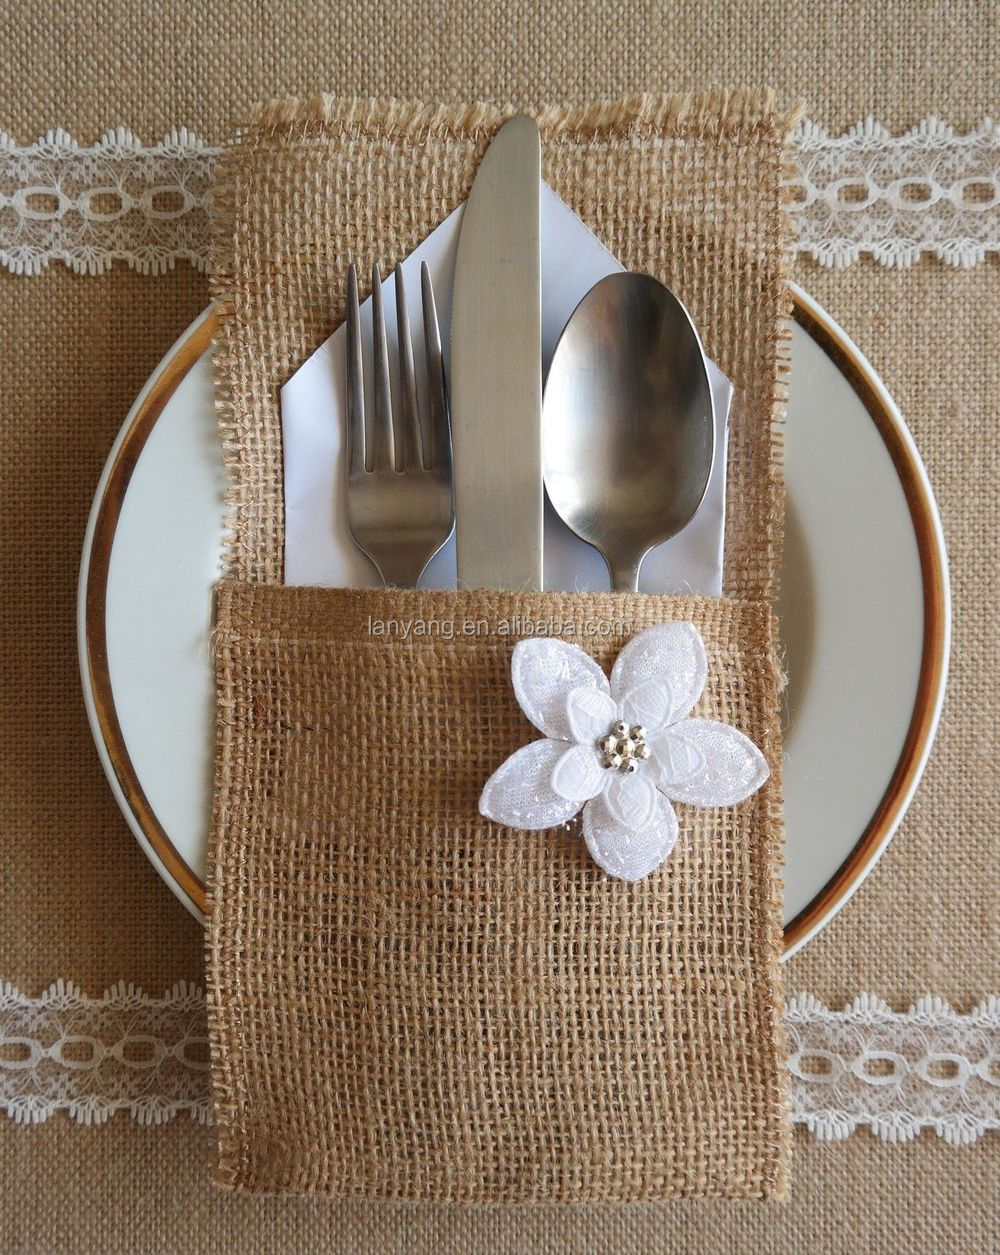 Bride And Groom Table Setting ,burlap Wedding Table Decorations For Party